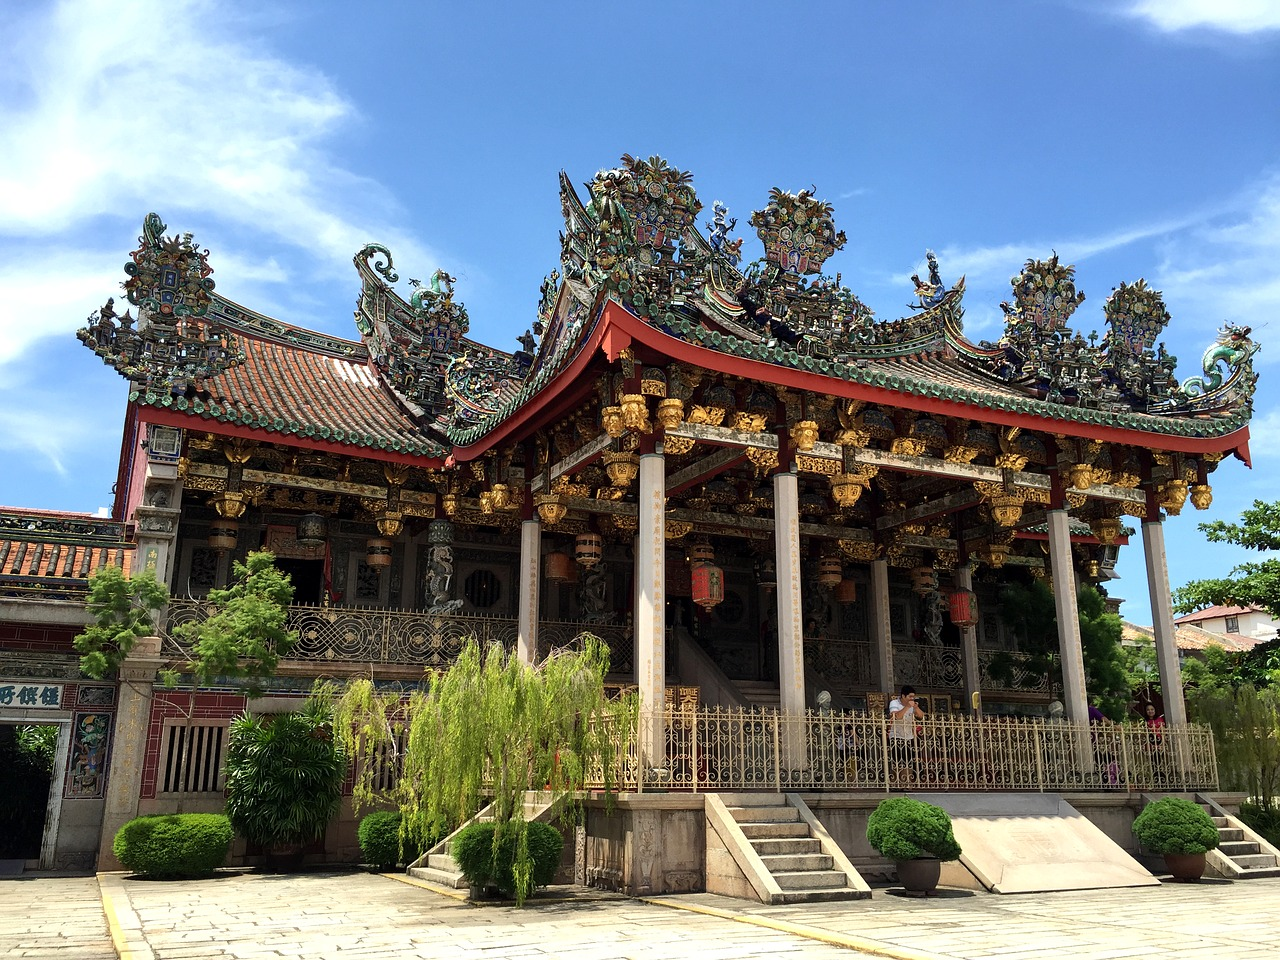 Khoo Kongsi one of the Top 10 attractions in Malaysia